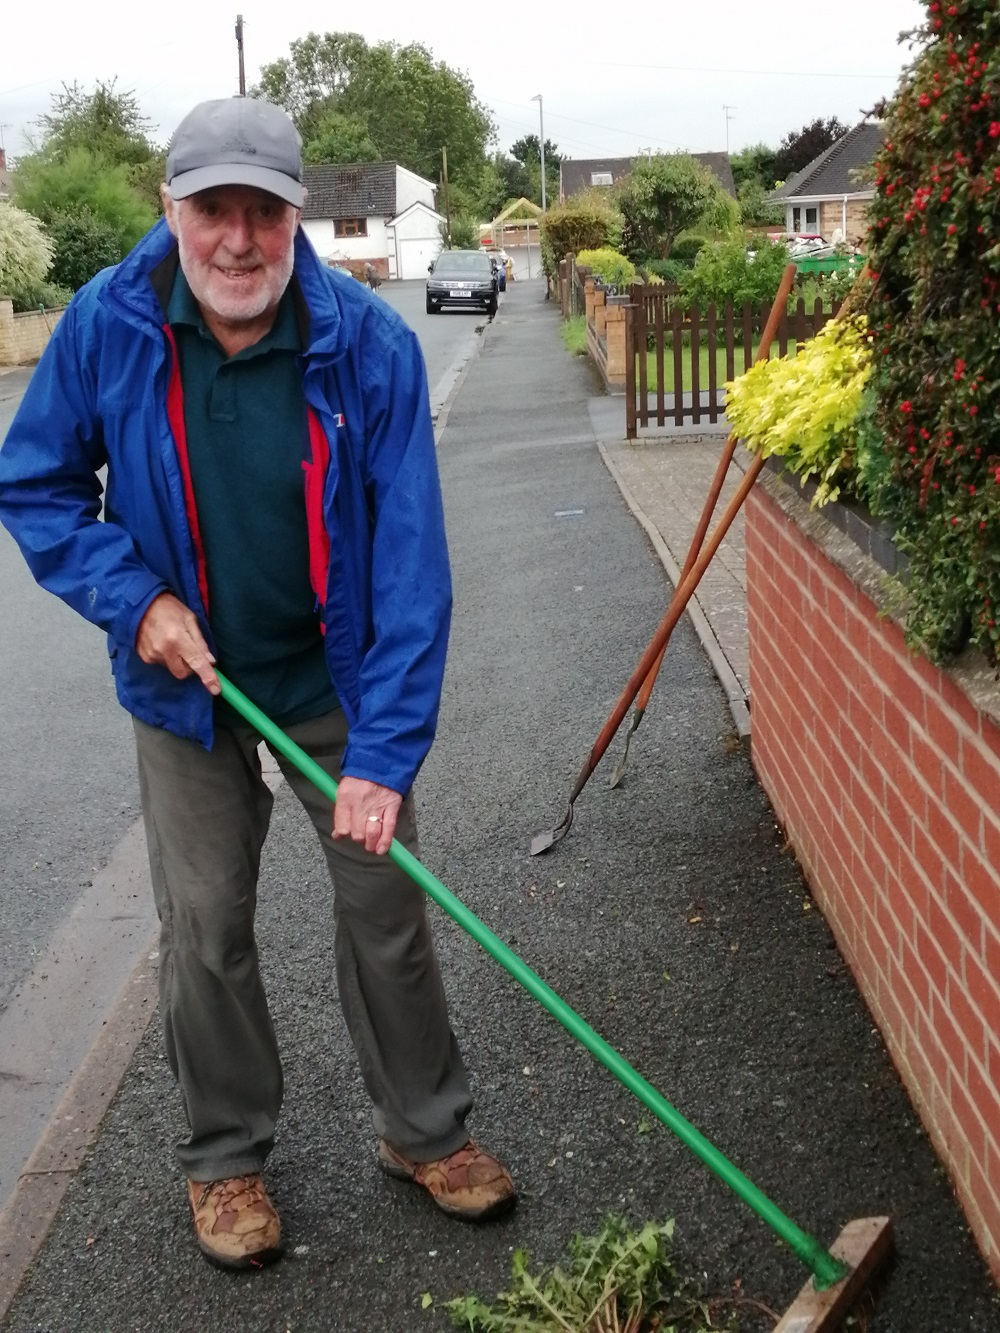 Residents roll up sleeves for Battenhall clean-up